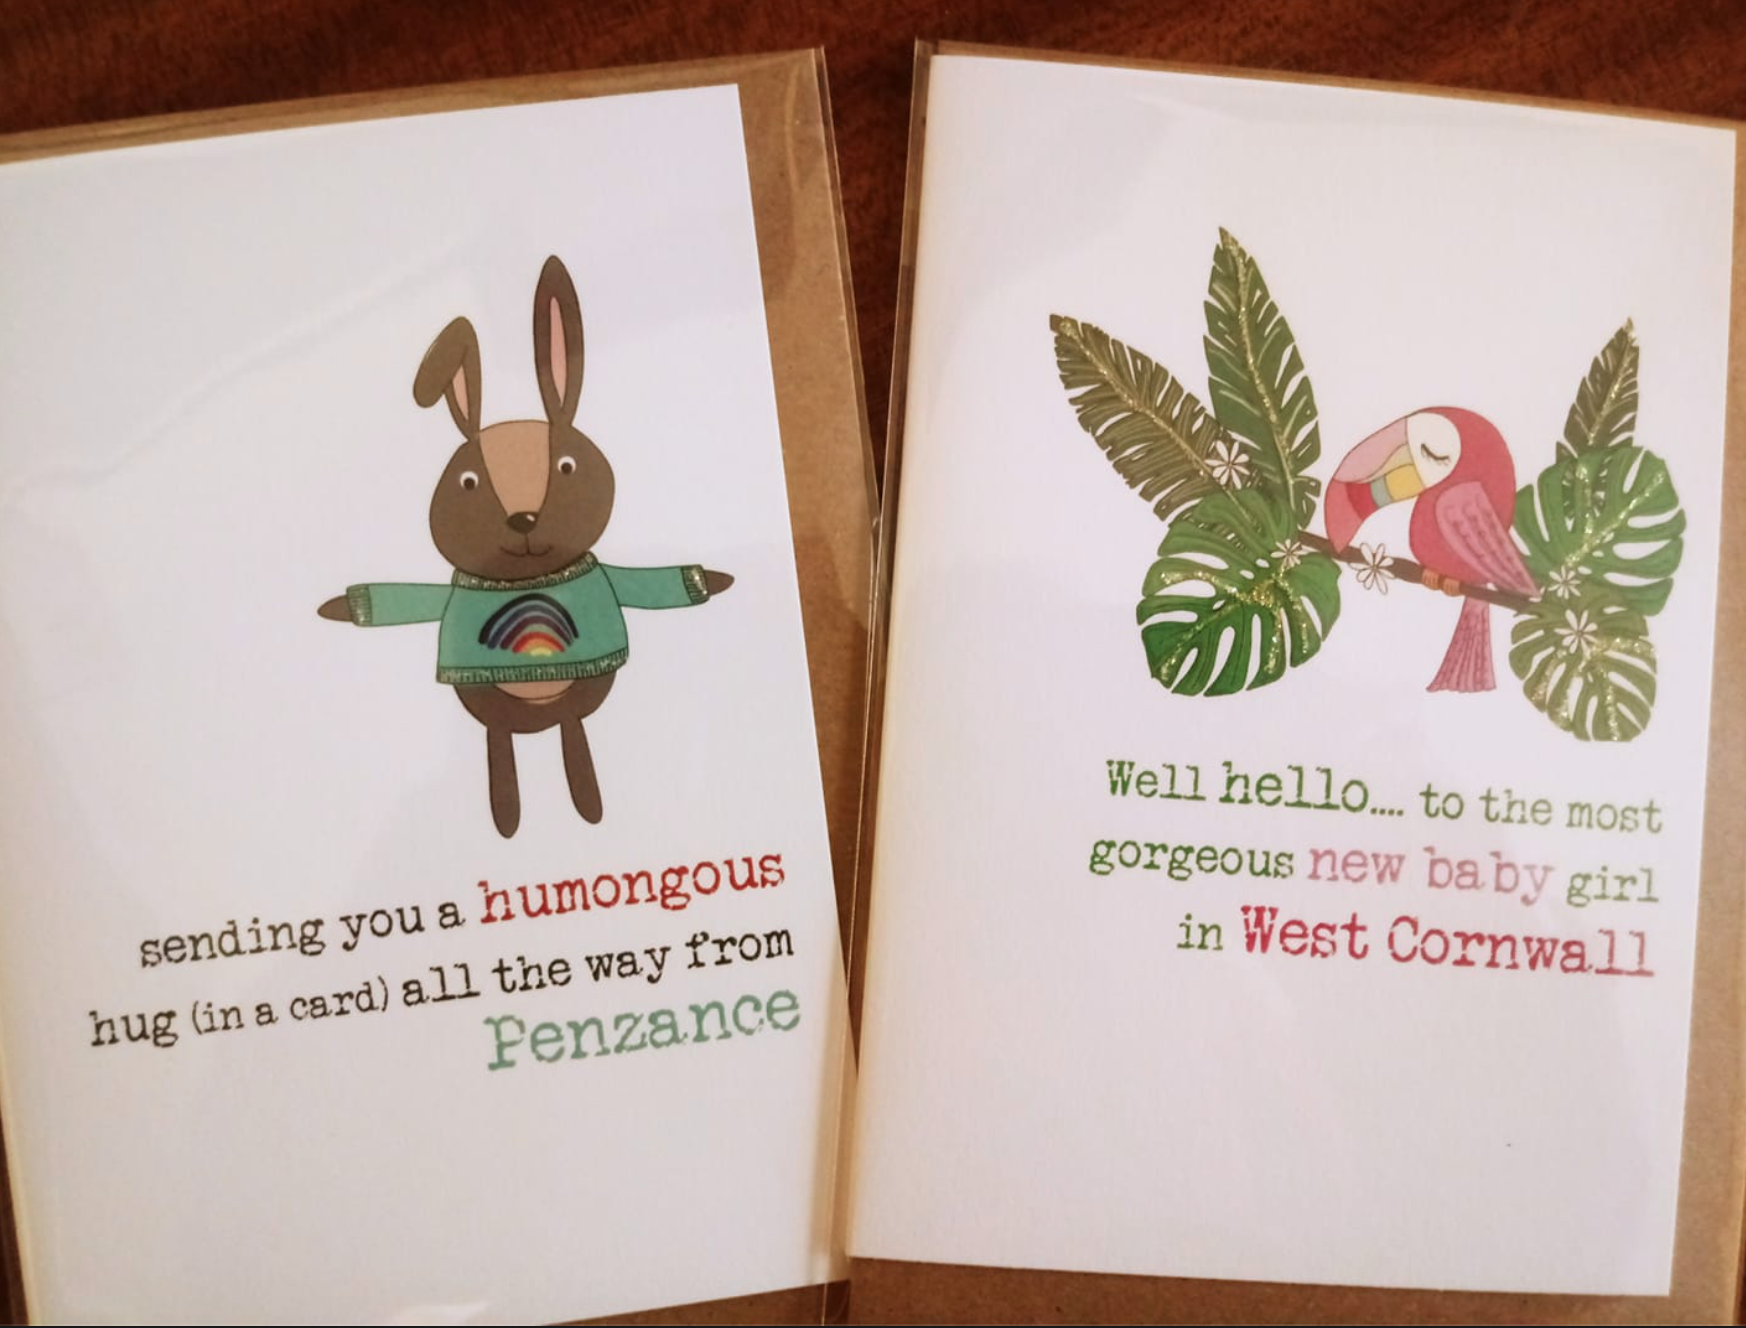 Above: Two designs from Dandelion Stationery that do well with Cardtime customers.